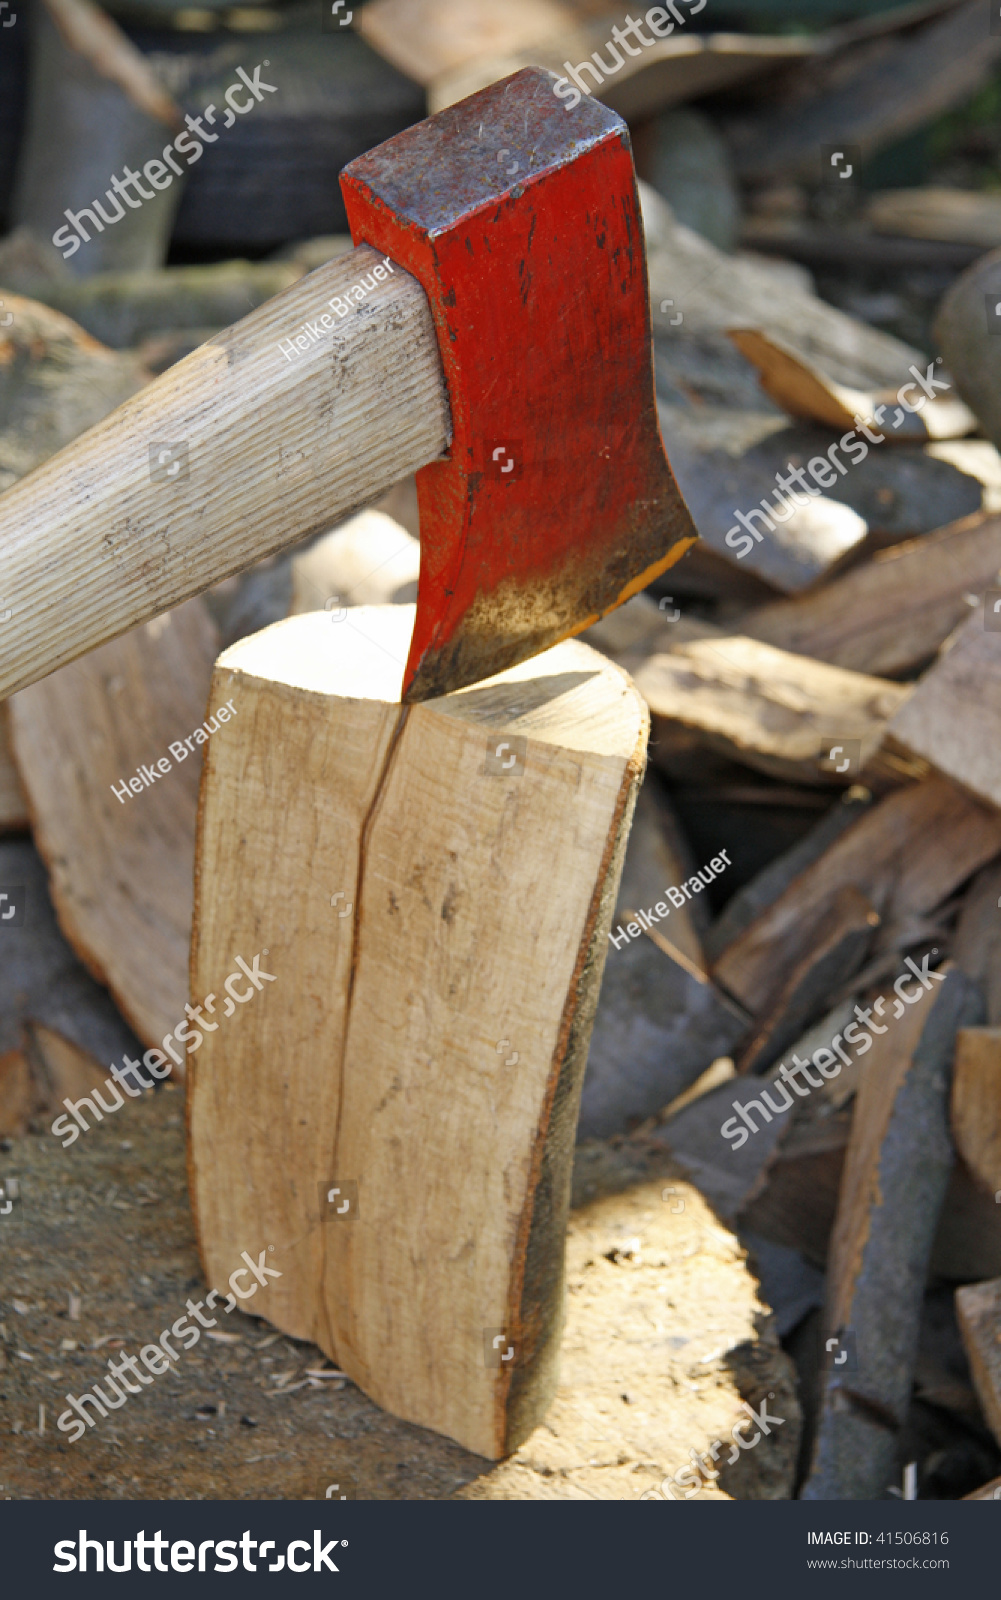 how to cut firewood with an axe